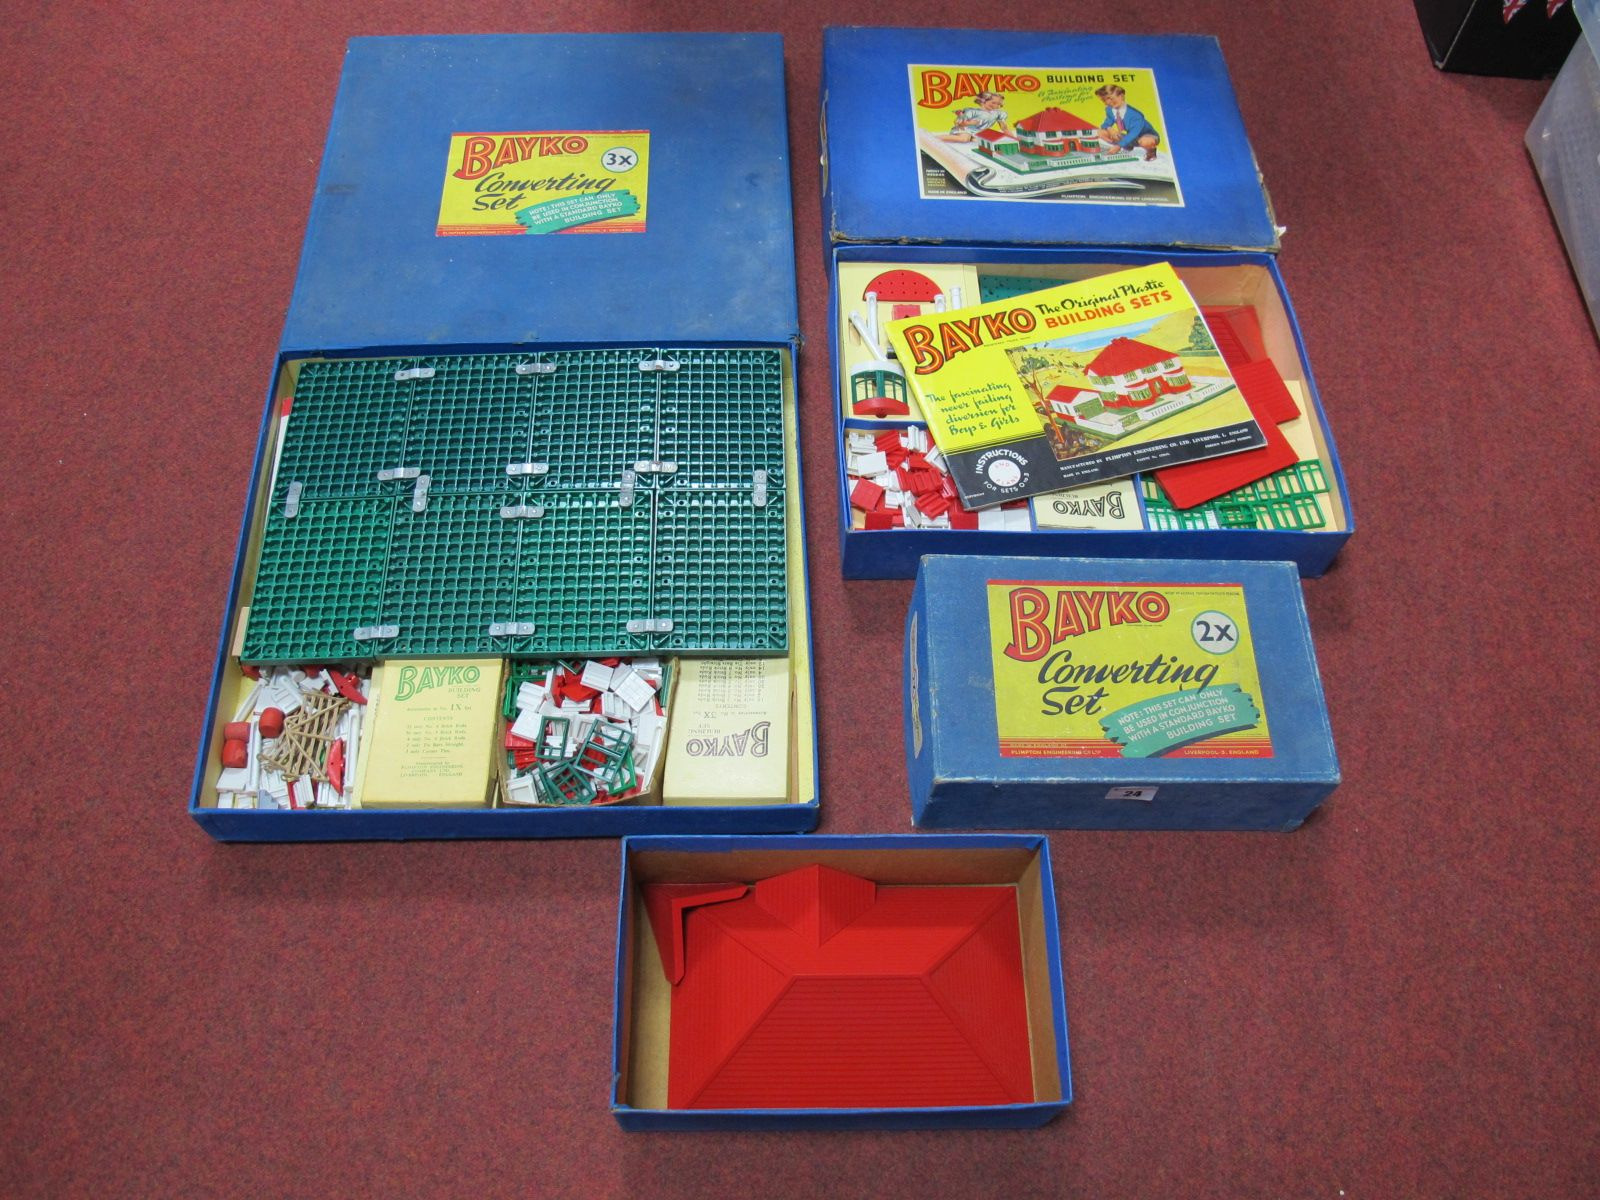 Lot 24 - Three Boxed Post War Bayko Sets #2, #3 and 2x Converting Set, unchecked for completeness,